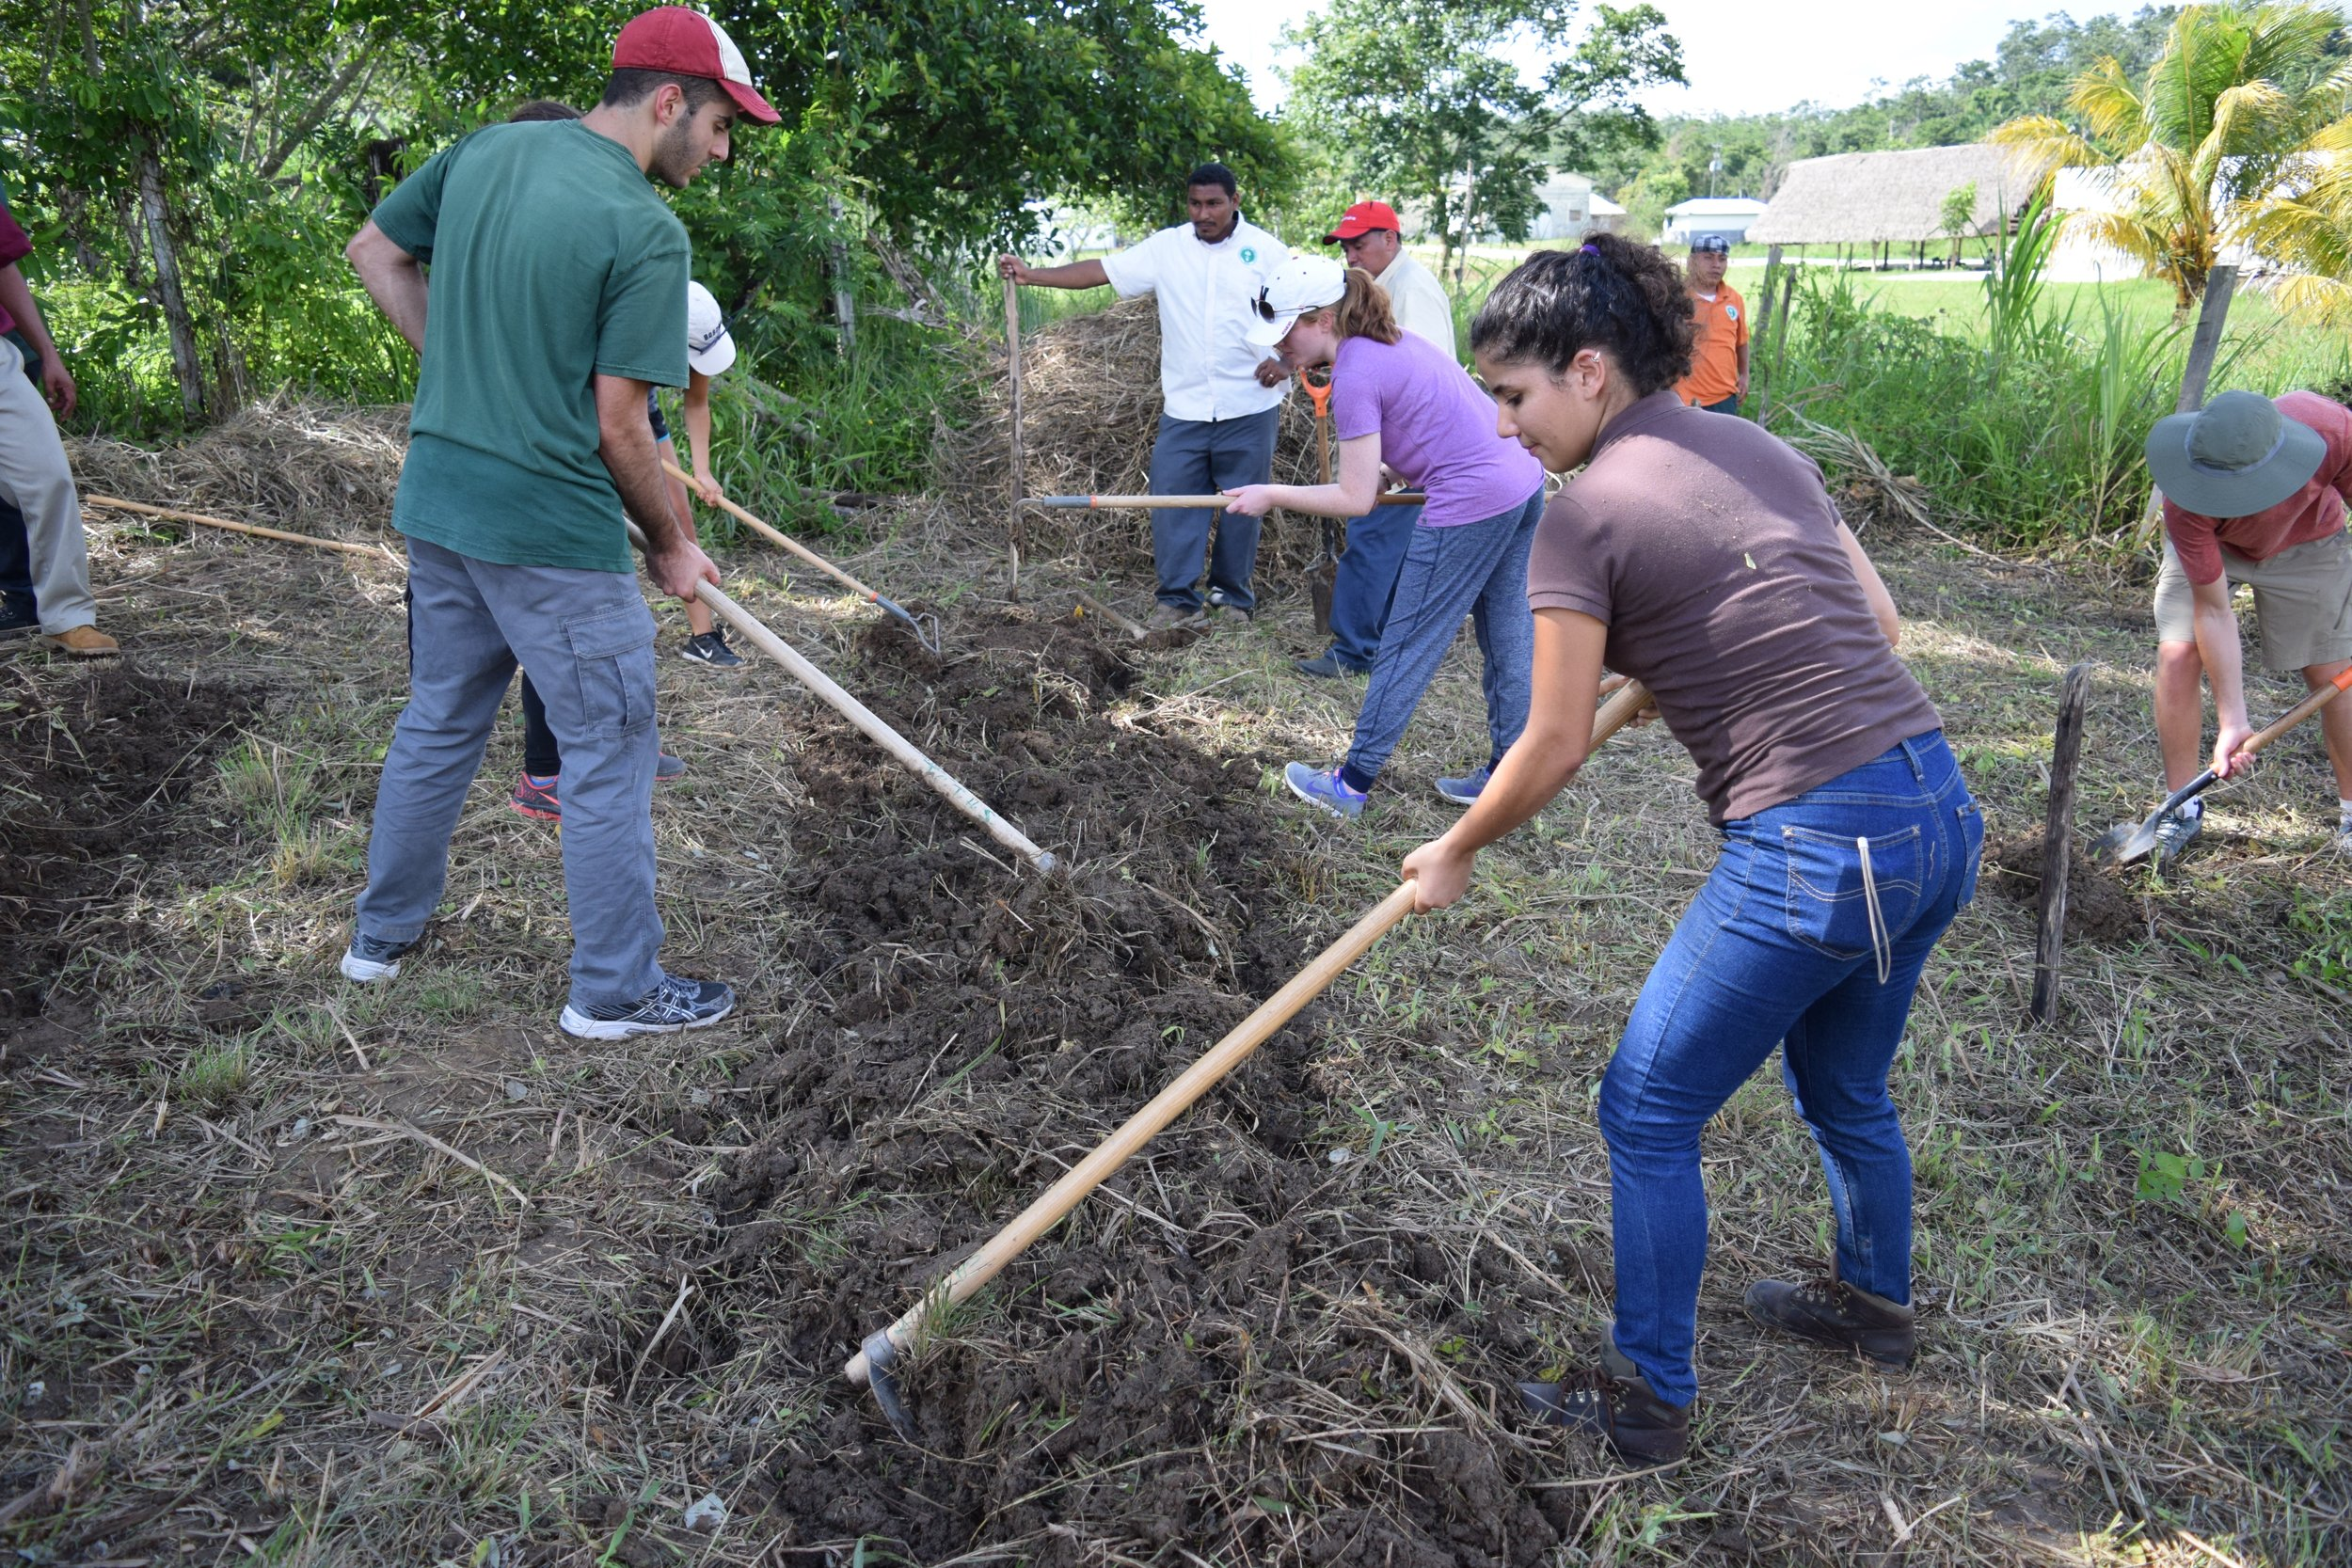 NEU students working with guidance of Belize field trainers.